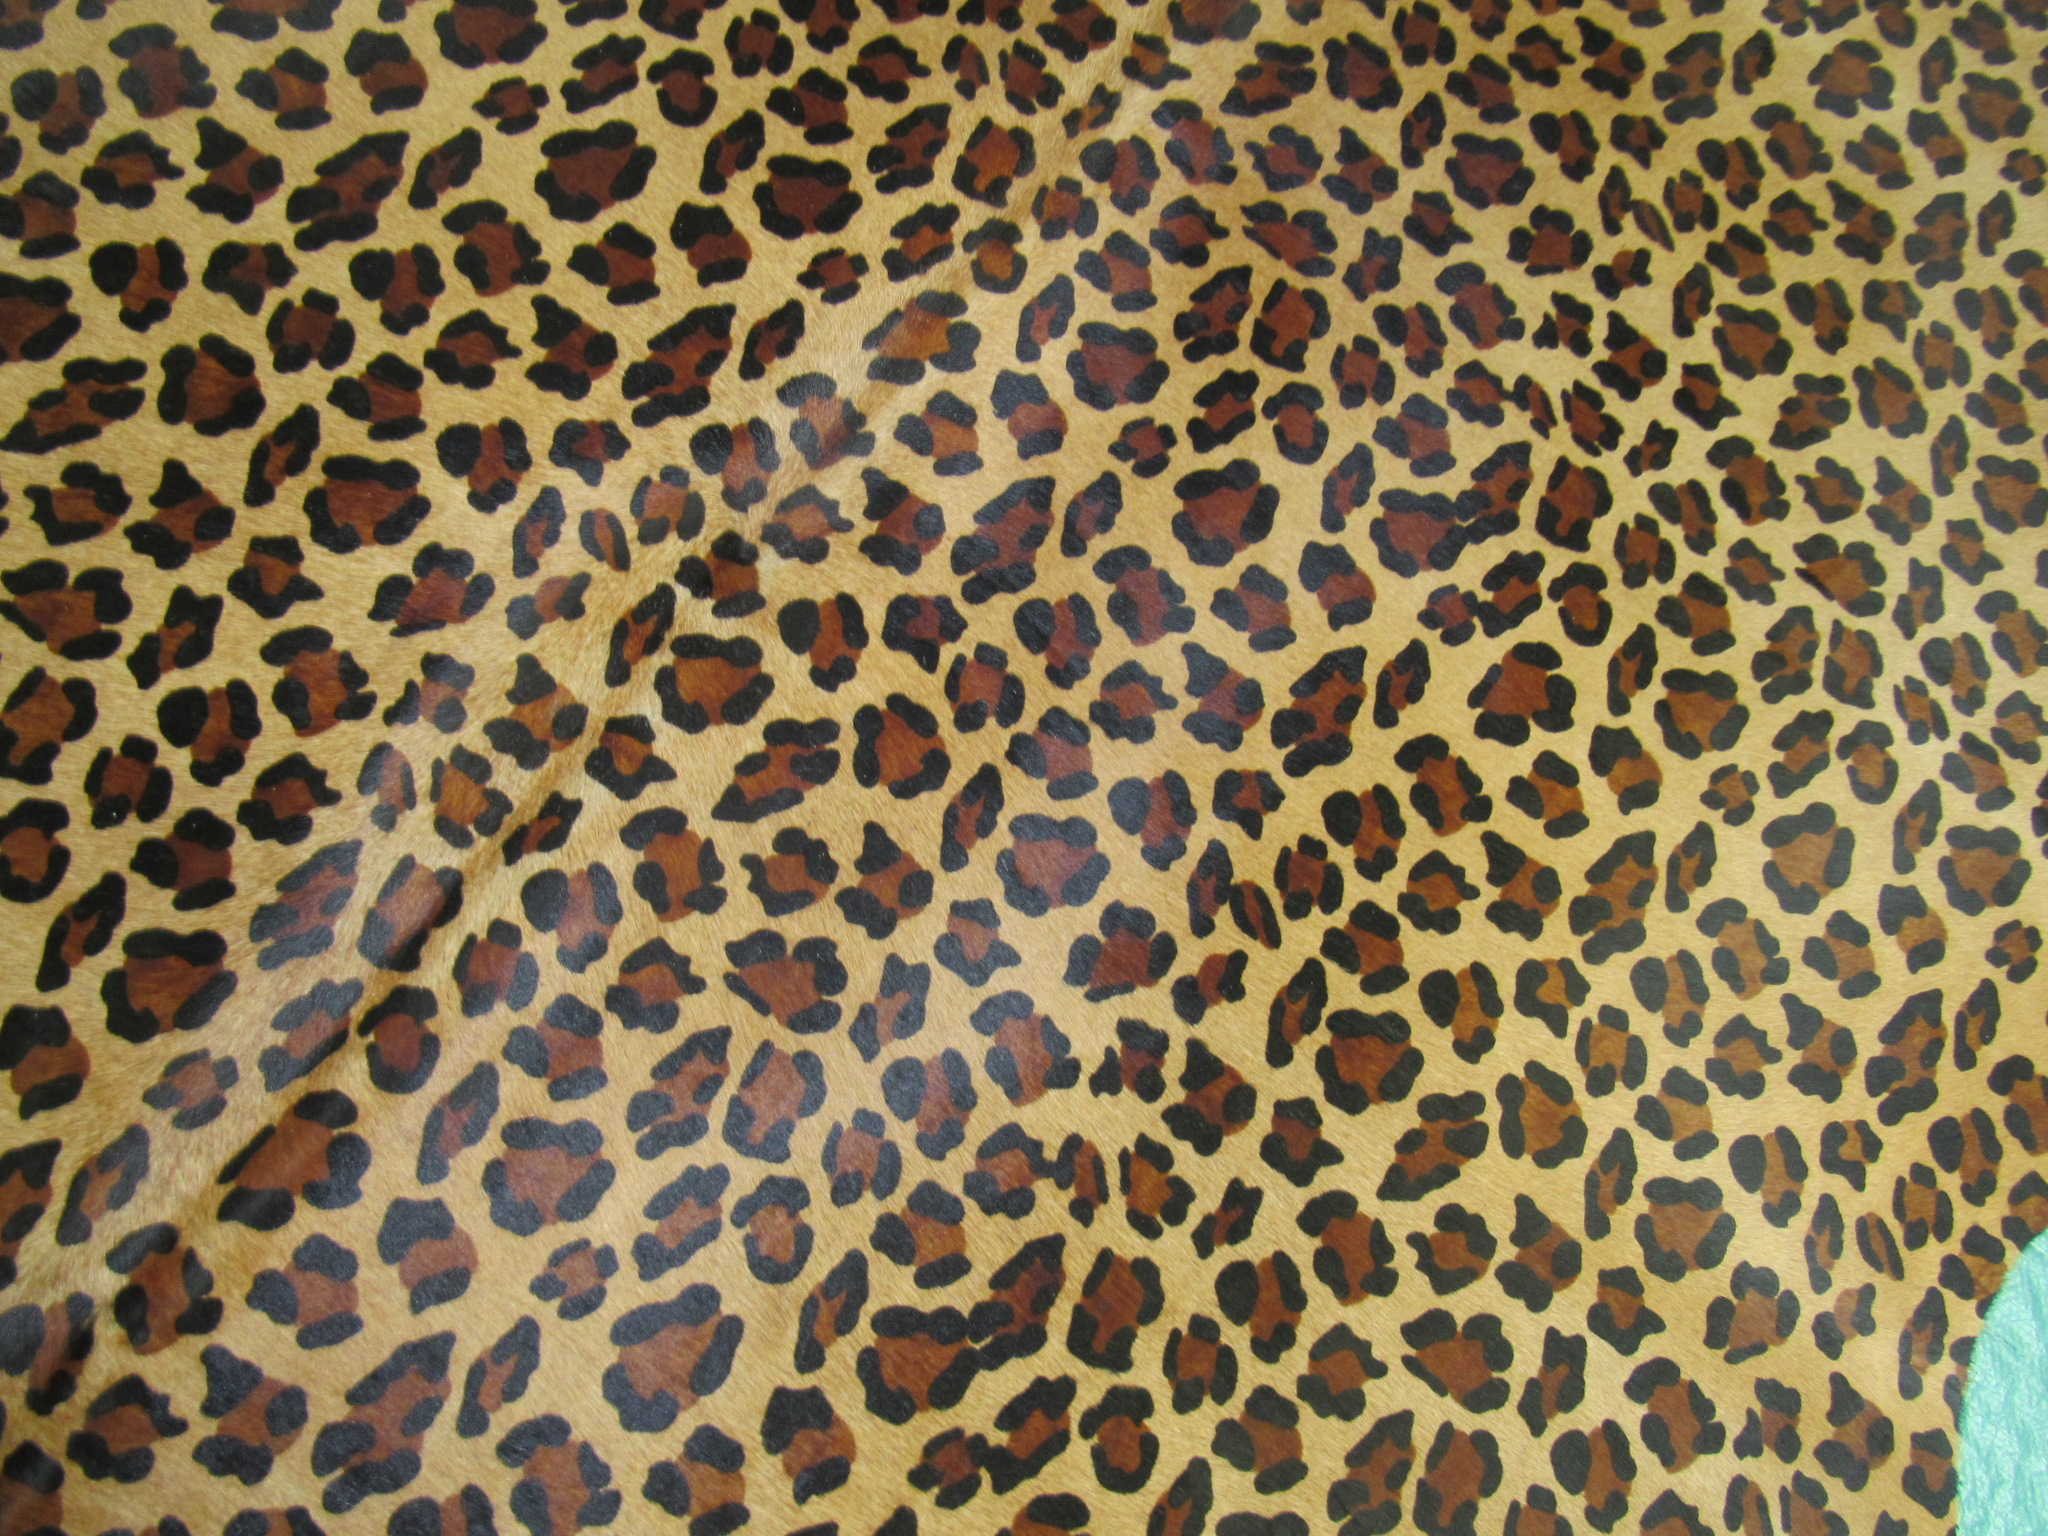 A-625 Leopard Print Cowhide Rug Size: 7' X 6'